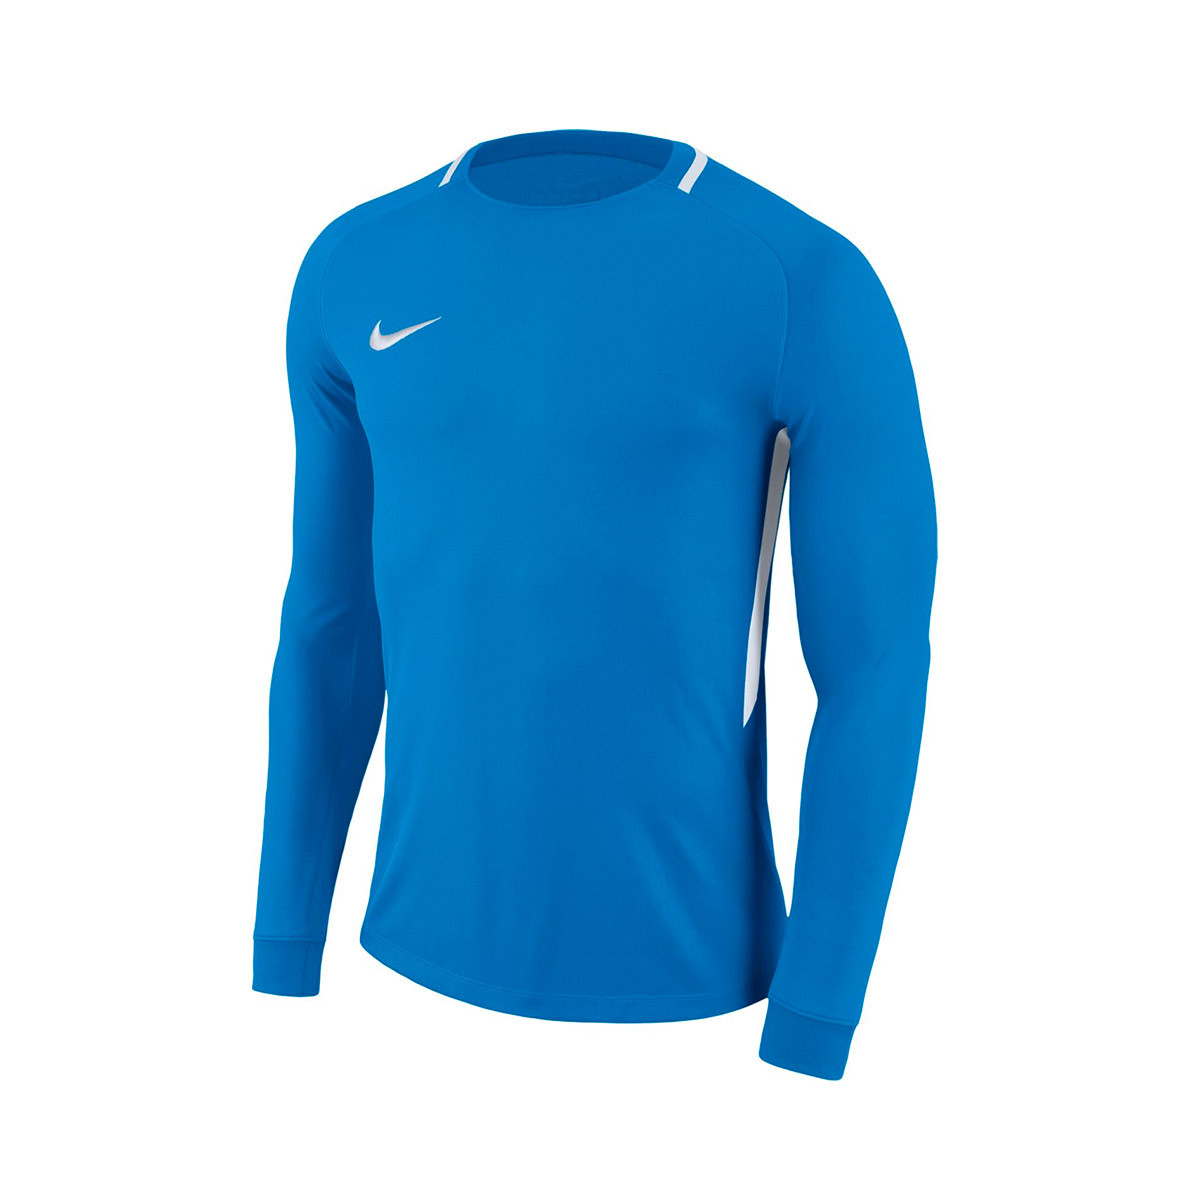 3d8d0e655 Jersey Nike Park Goalie III m/l Photo blue-White - Tienda de fútbol Fútbol  Emotion